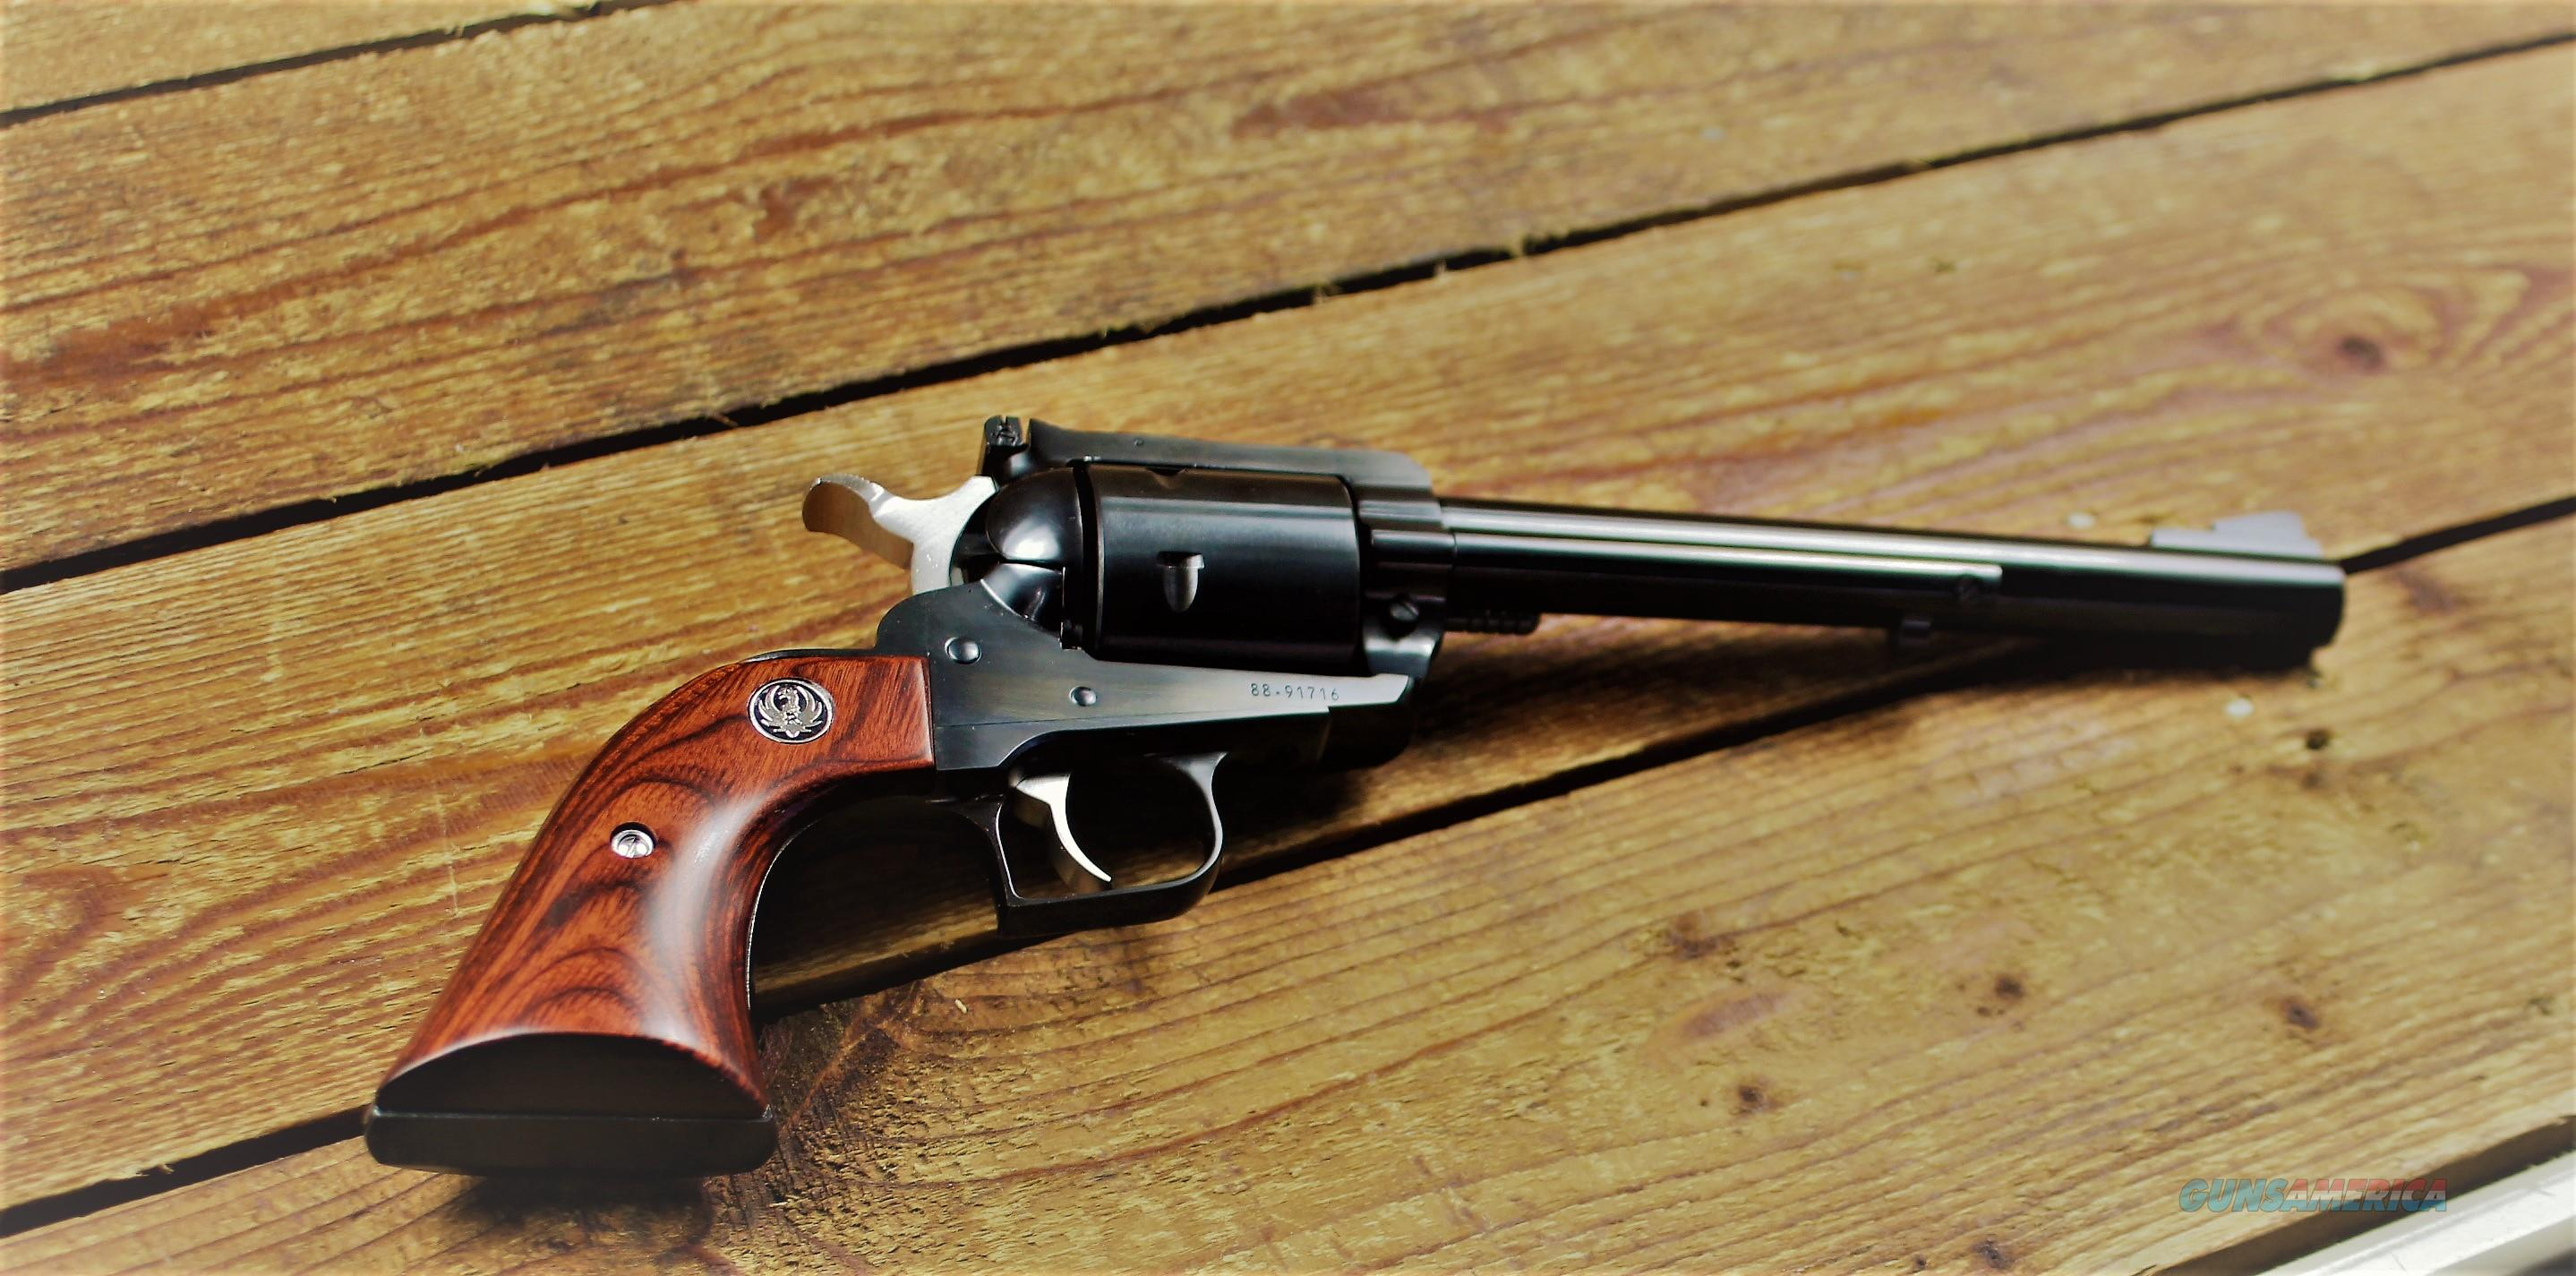 Ruger Super Blackhawk .44 Magnum 0802 EASY PAY $60  Guns > Pistols > Ruger Single Action Revolvers > Blackhawk Type